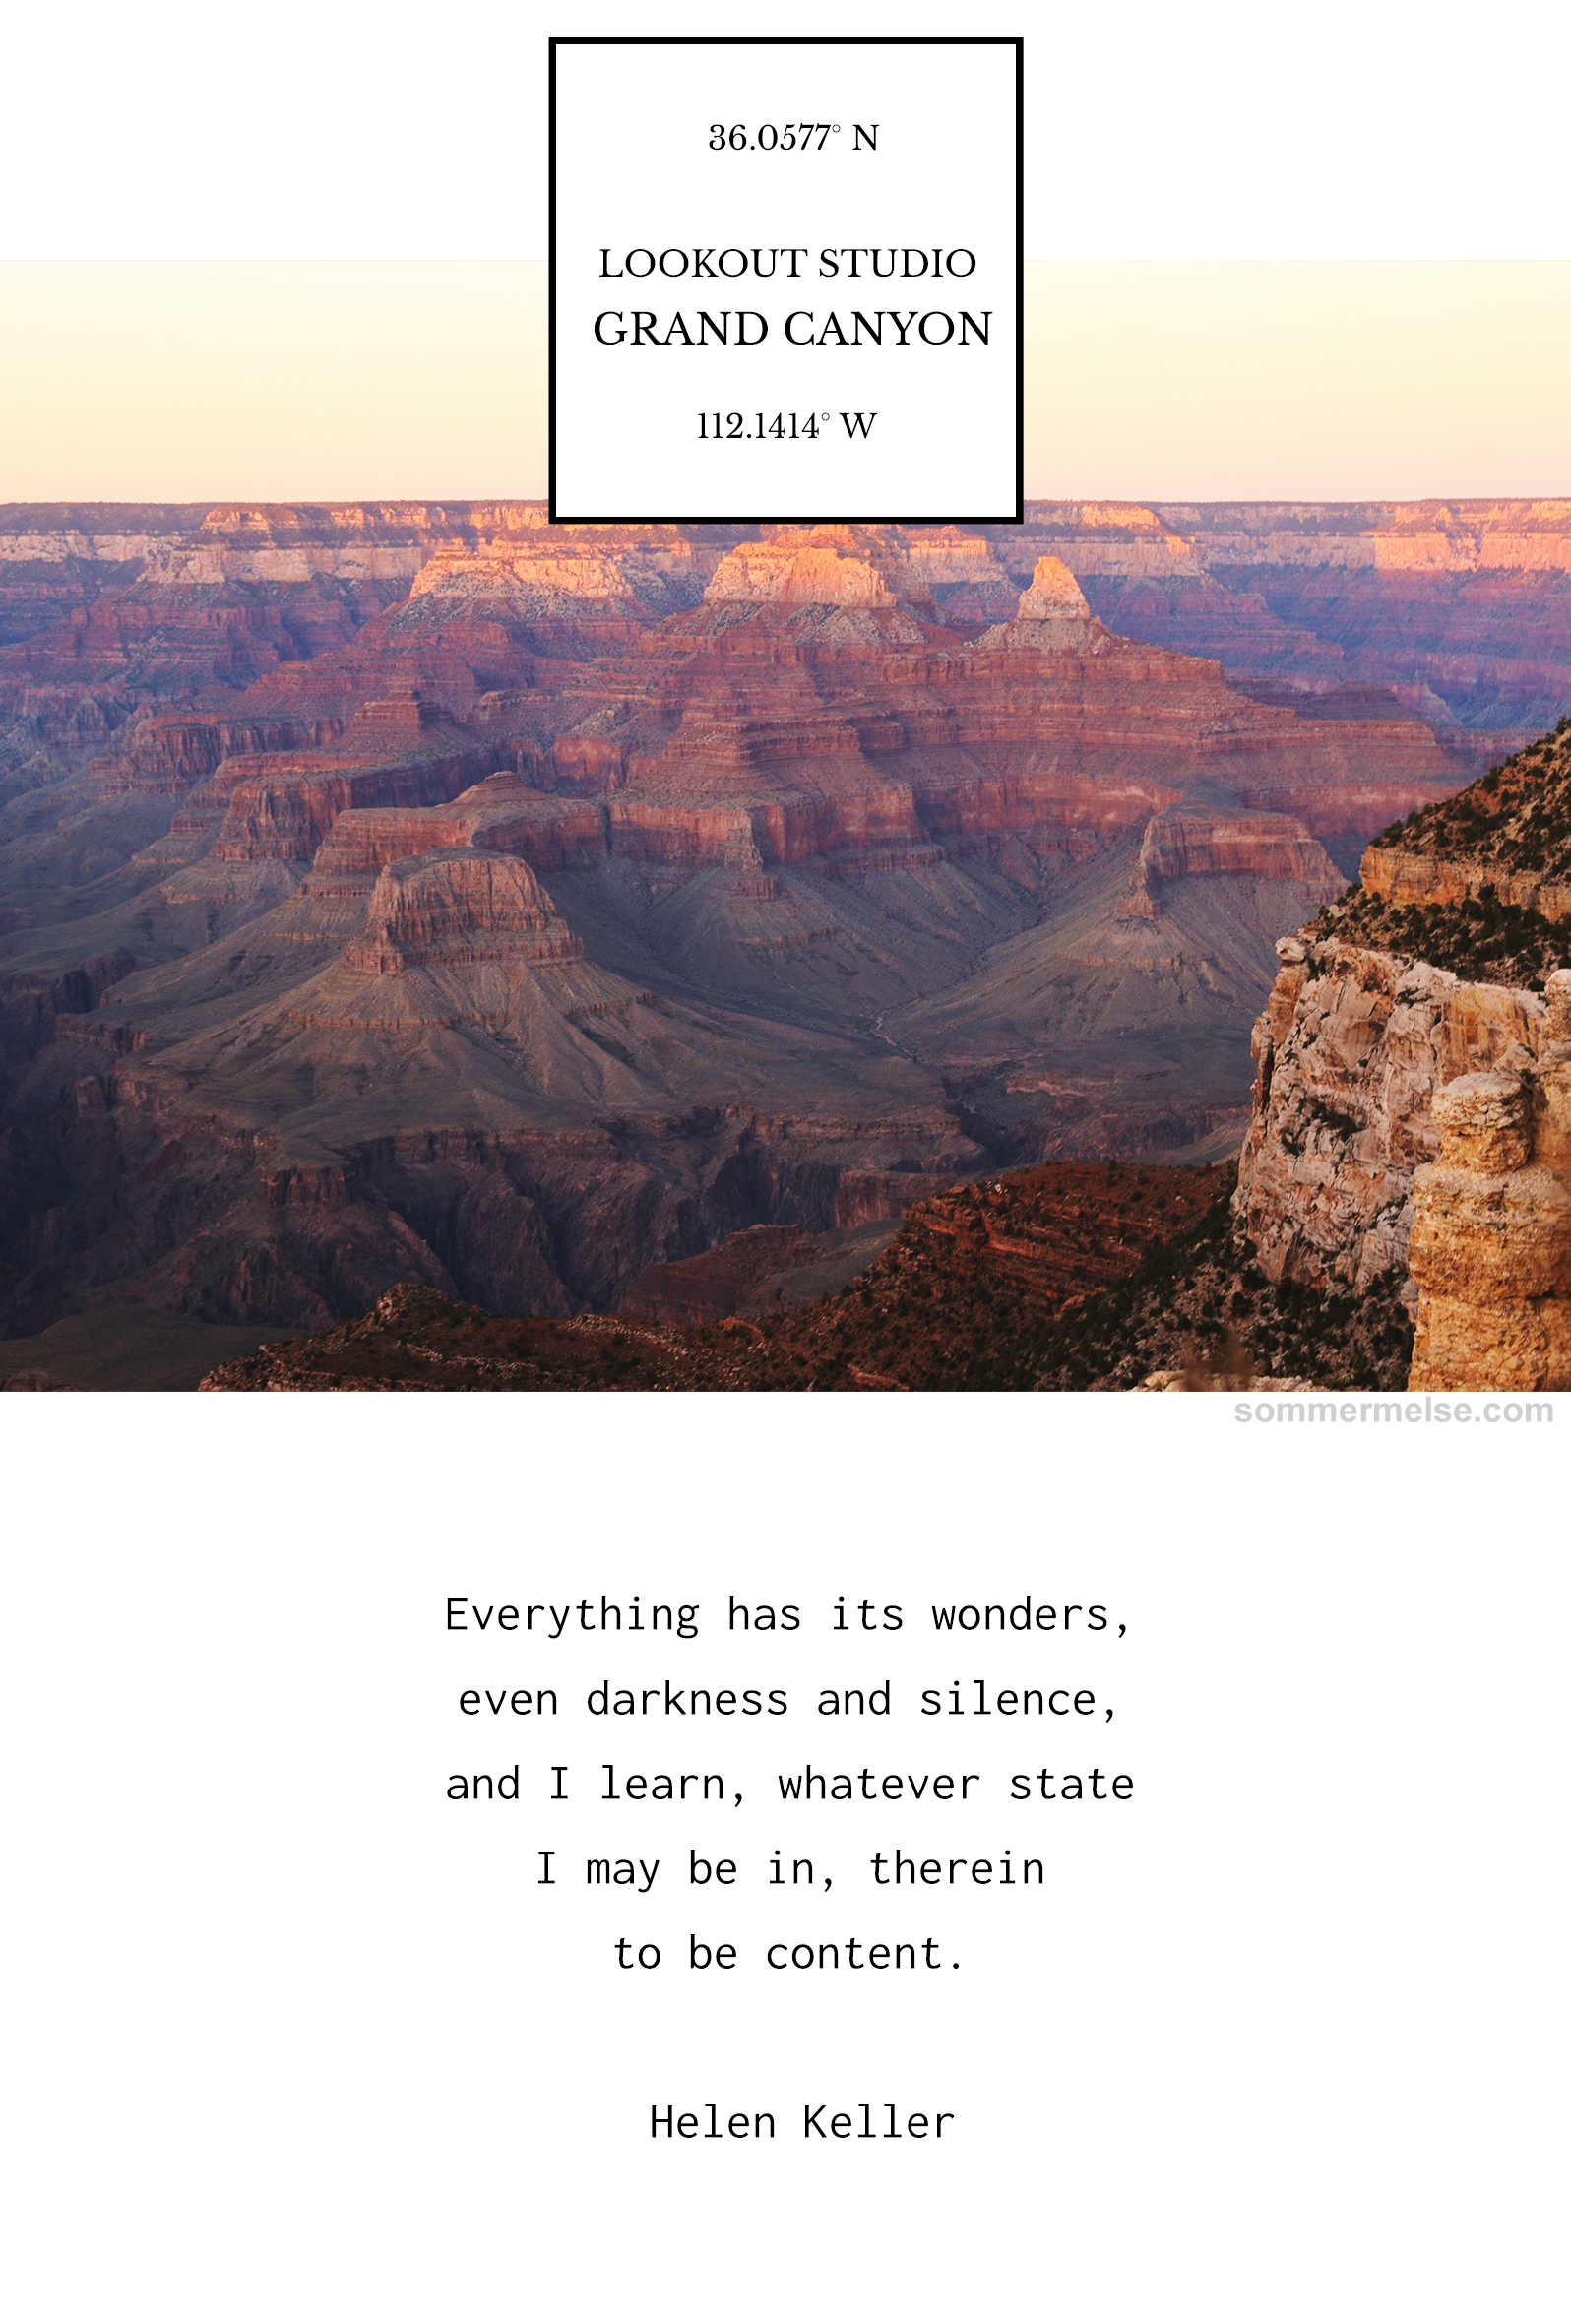 32_finding_wonder_lookout_studio_grand_canyon_wonders_helen_keller_quote